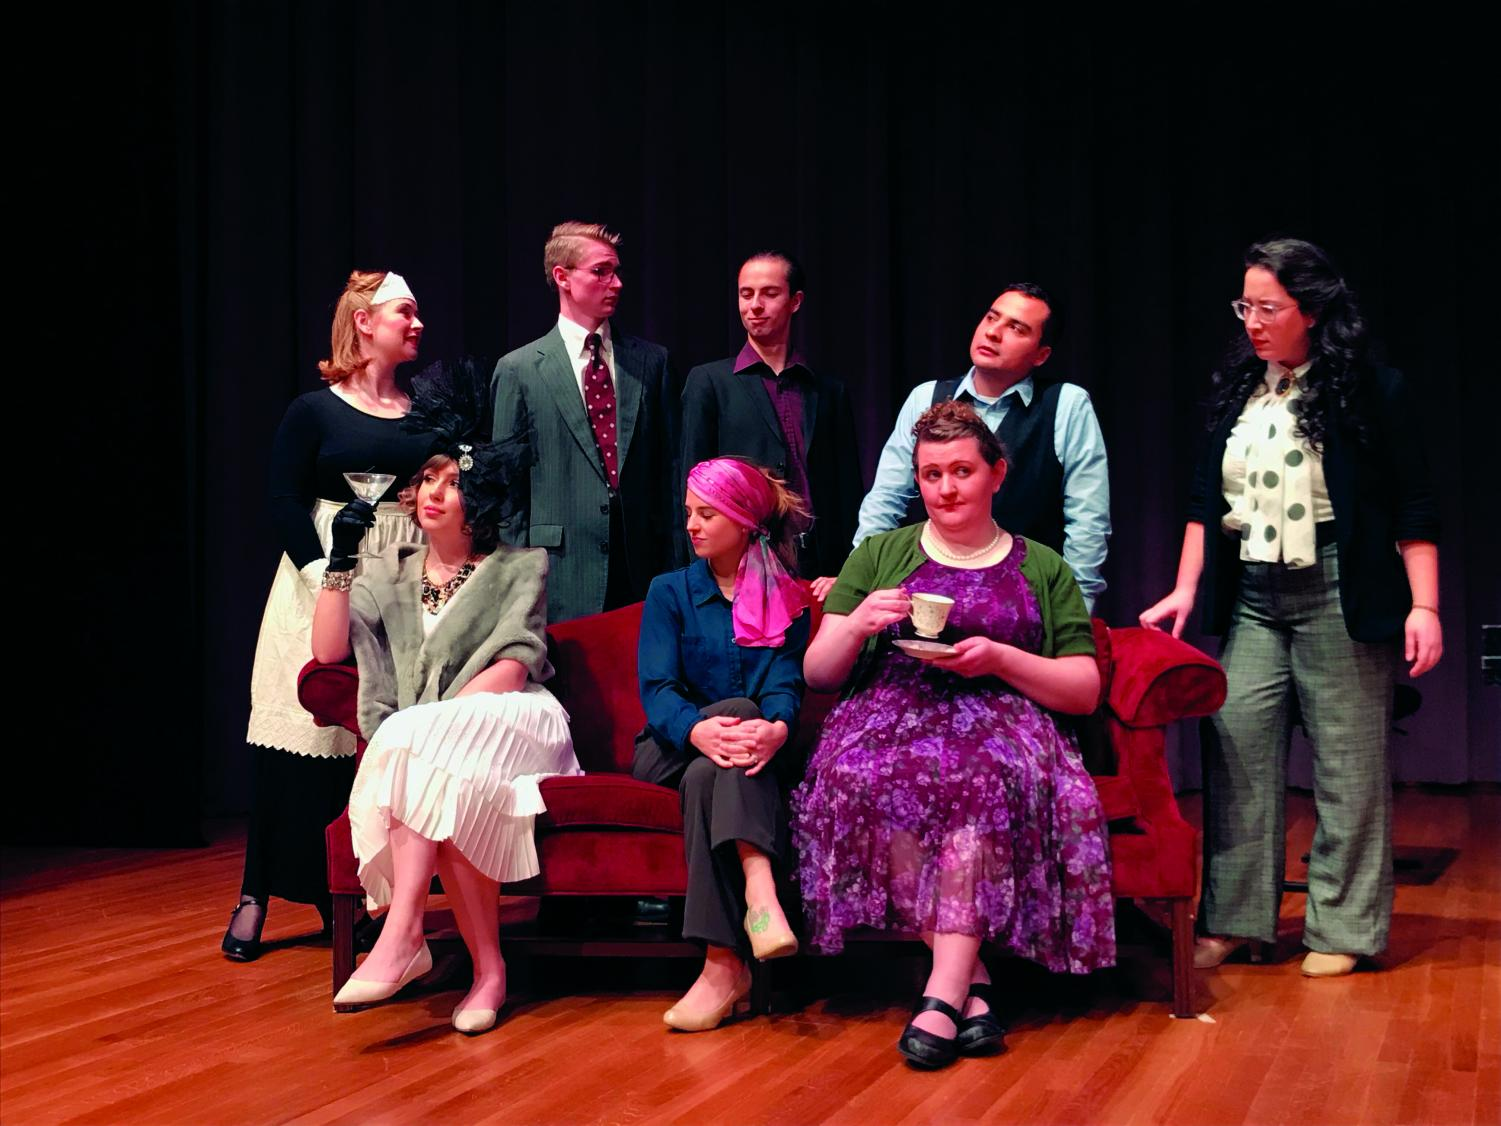 The EWU Opera Department's first Pastiche of the year, Murder Mystery Night. The Opera Department is working on completing three productions this school year | Photo courtesy of EWU Opera Department